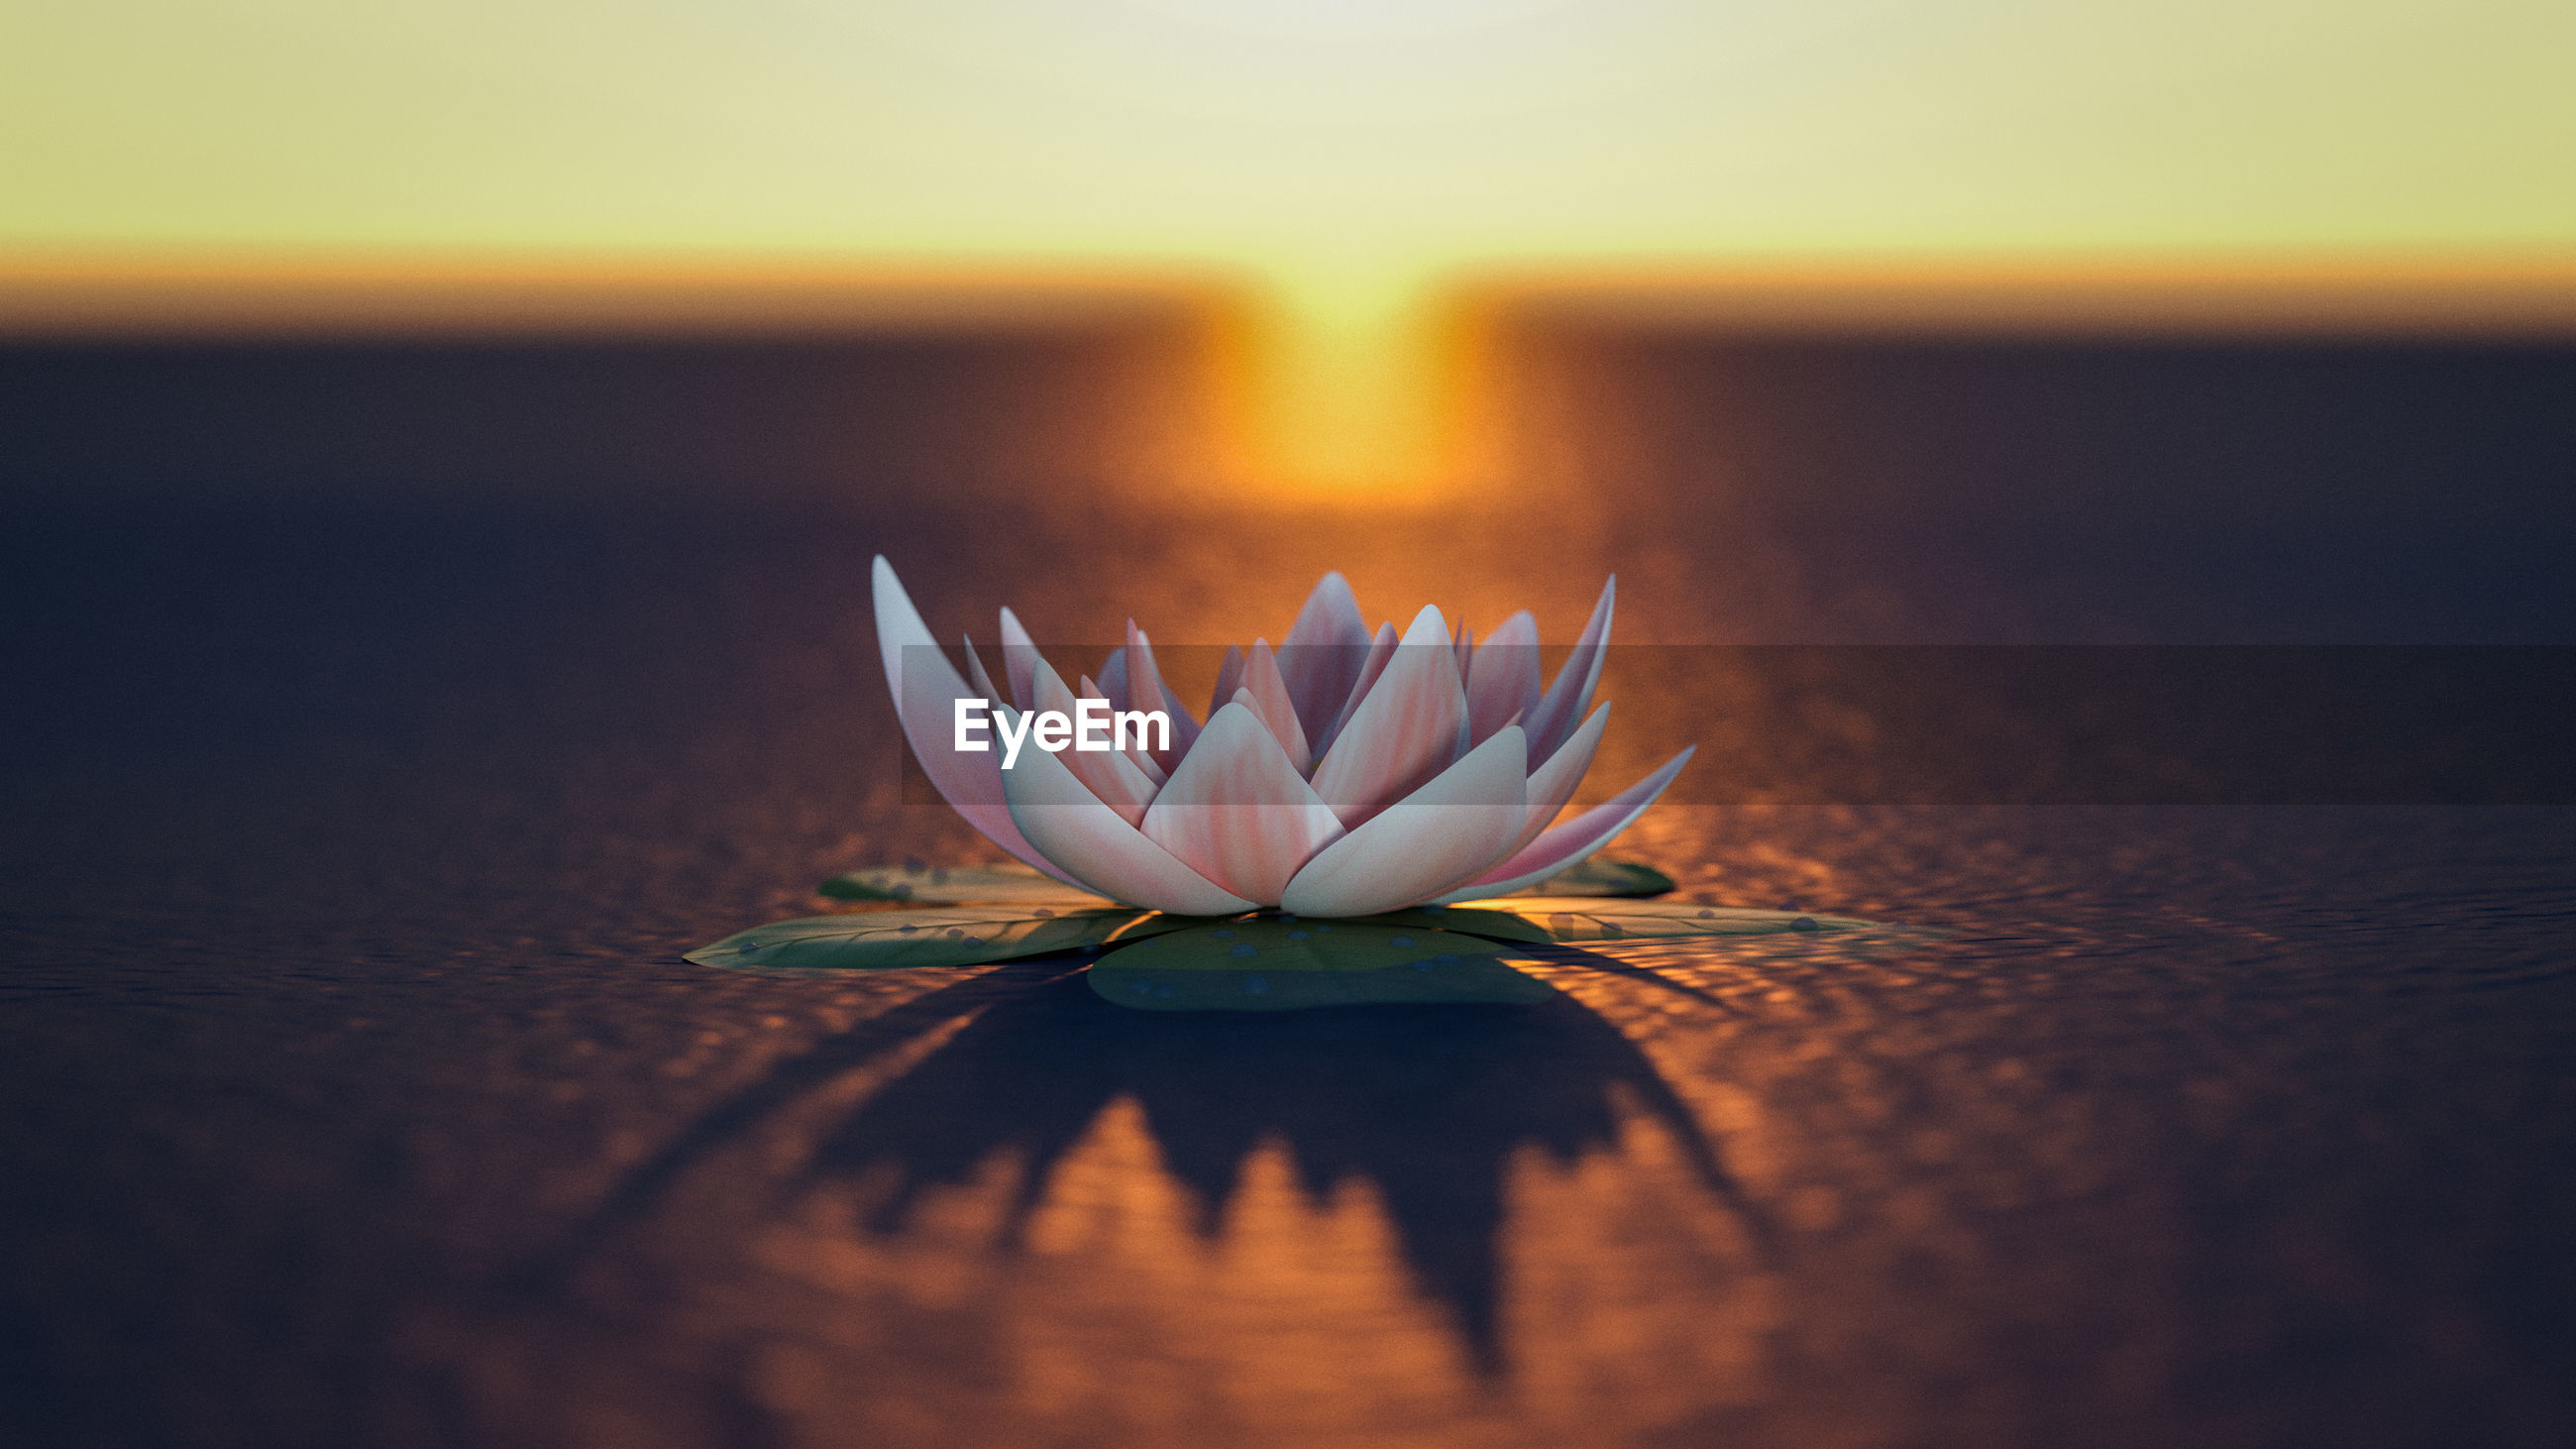 A mysterious lotus flower in the sunset